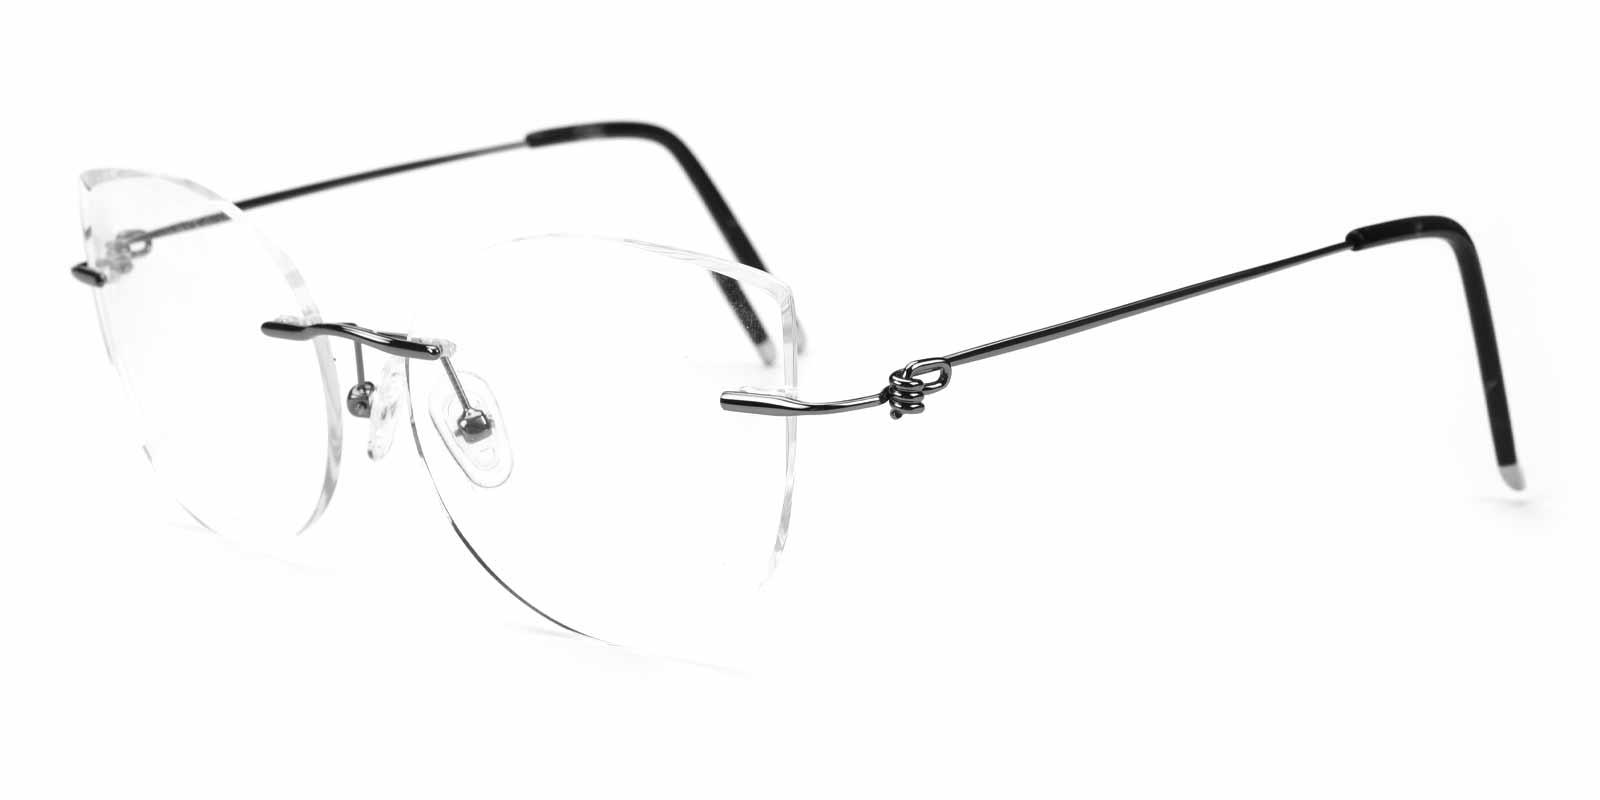 Jooye-Gun-Cat-Metal-Eyeglasses-additional1